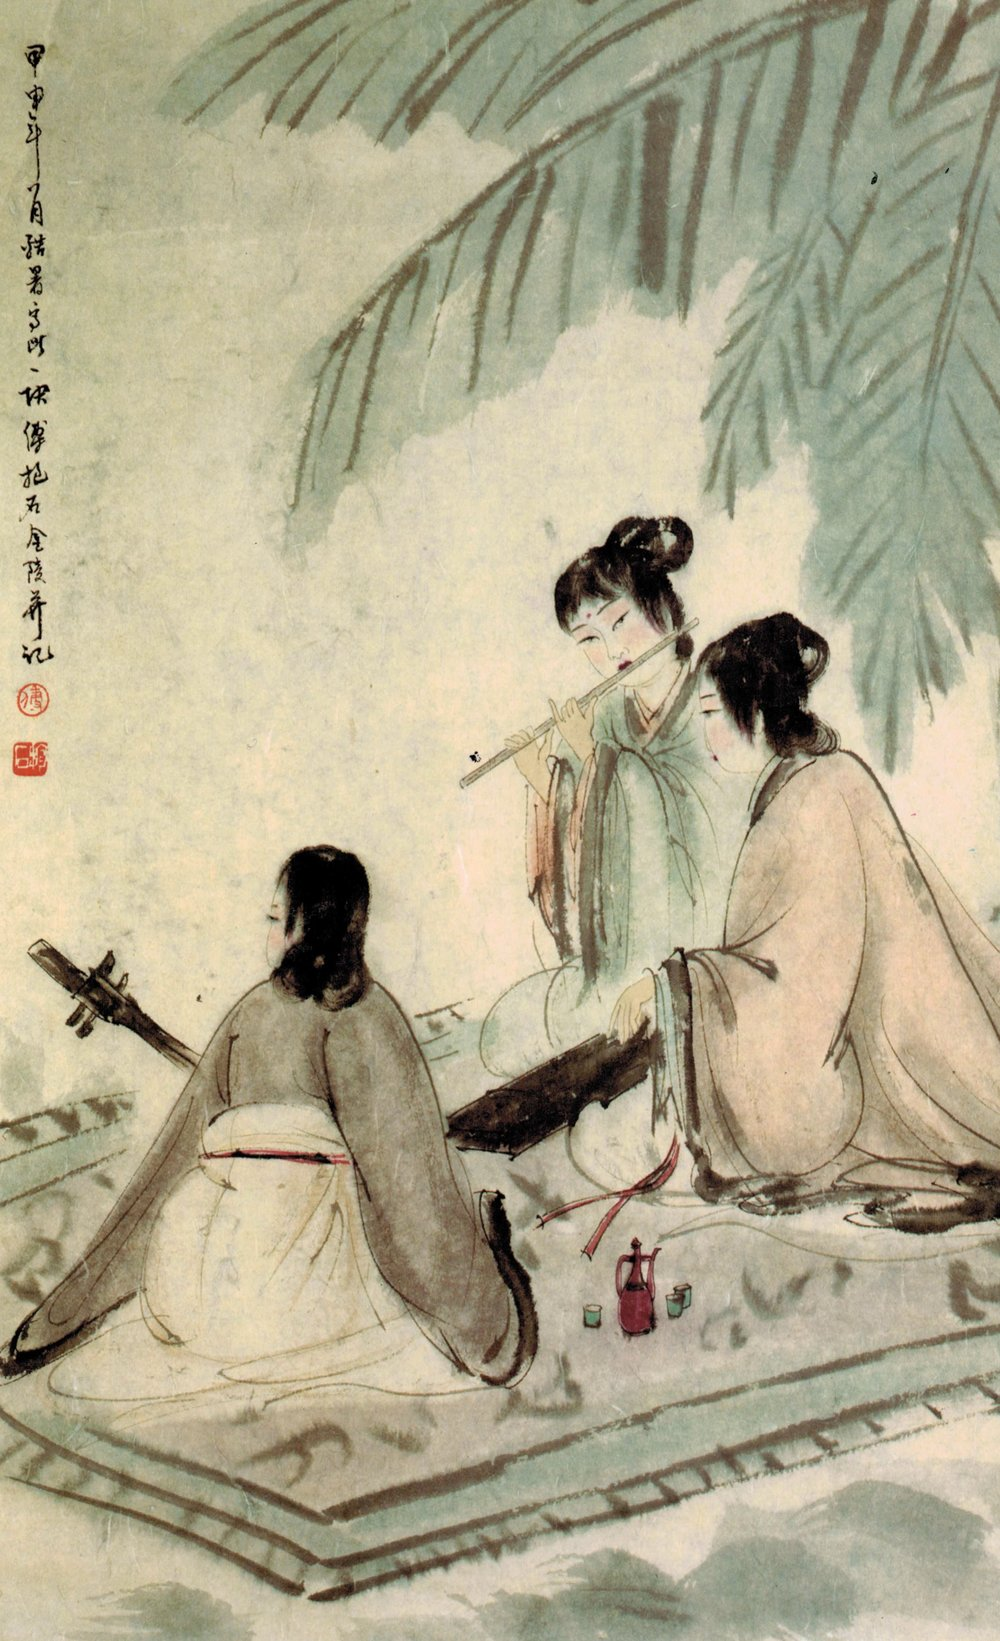 調樂圖Three Musicians, 傅抱石Fu Baoshi, 1940, ink on paper.